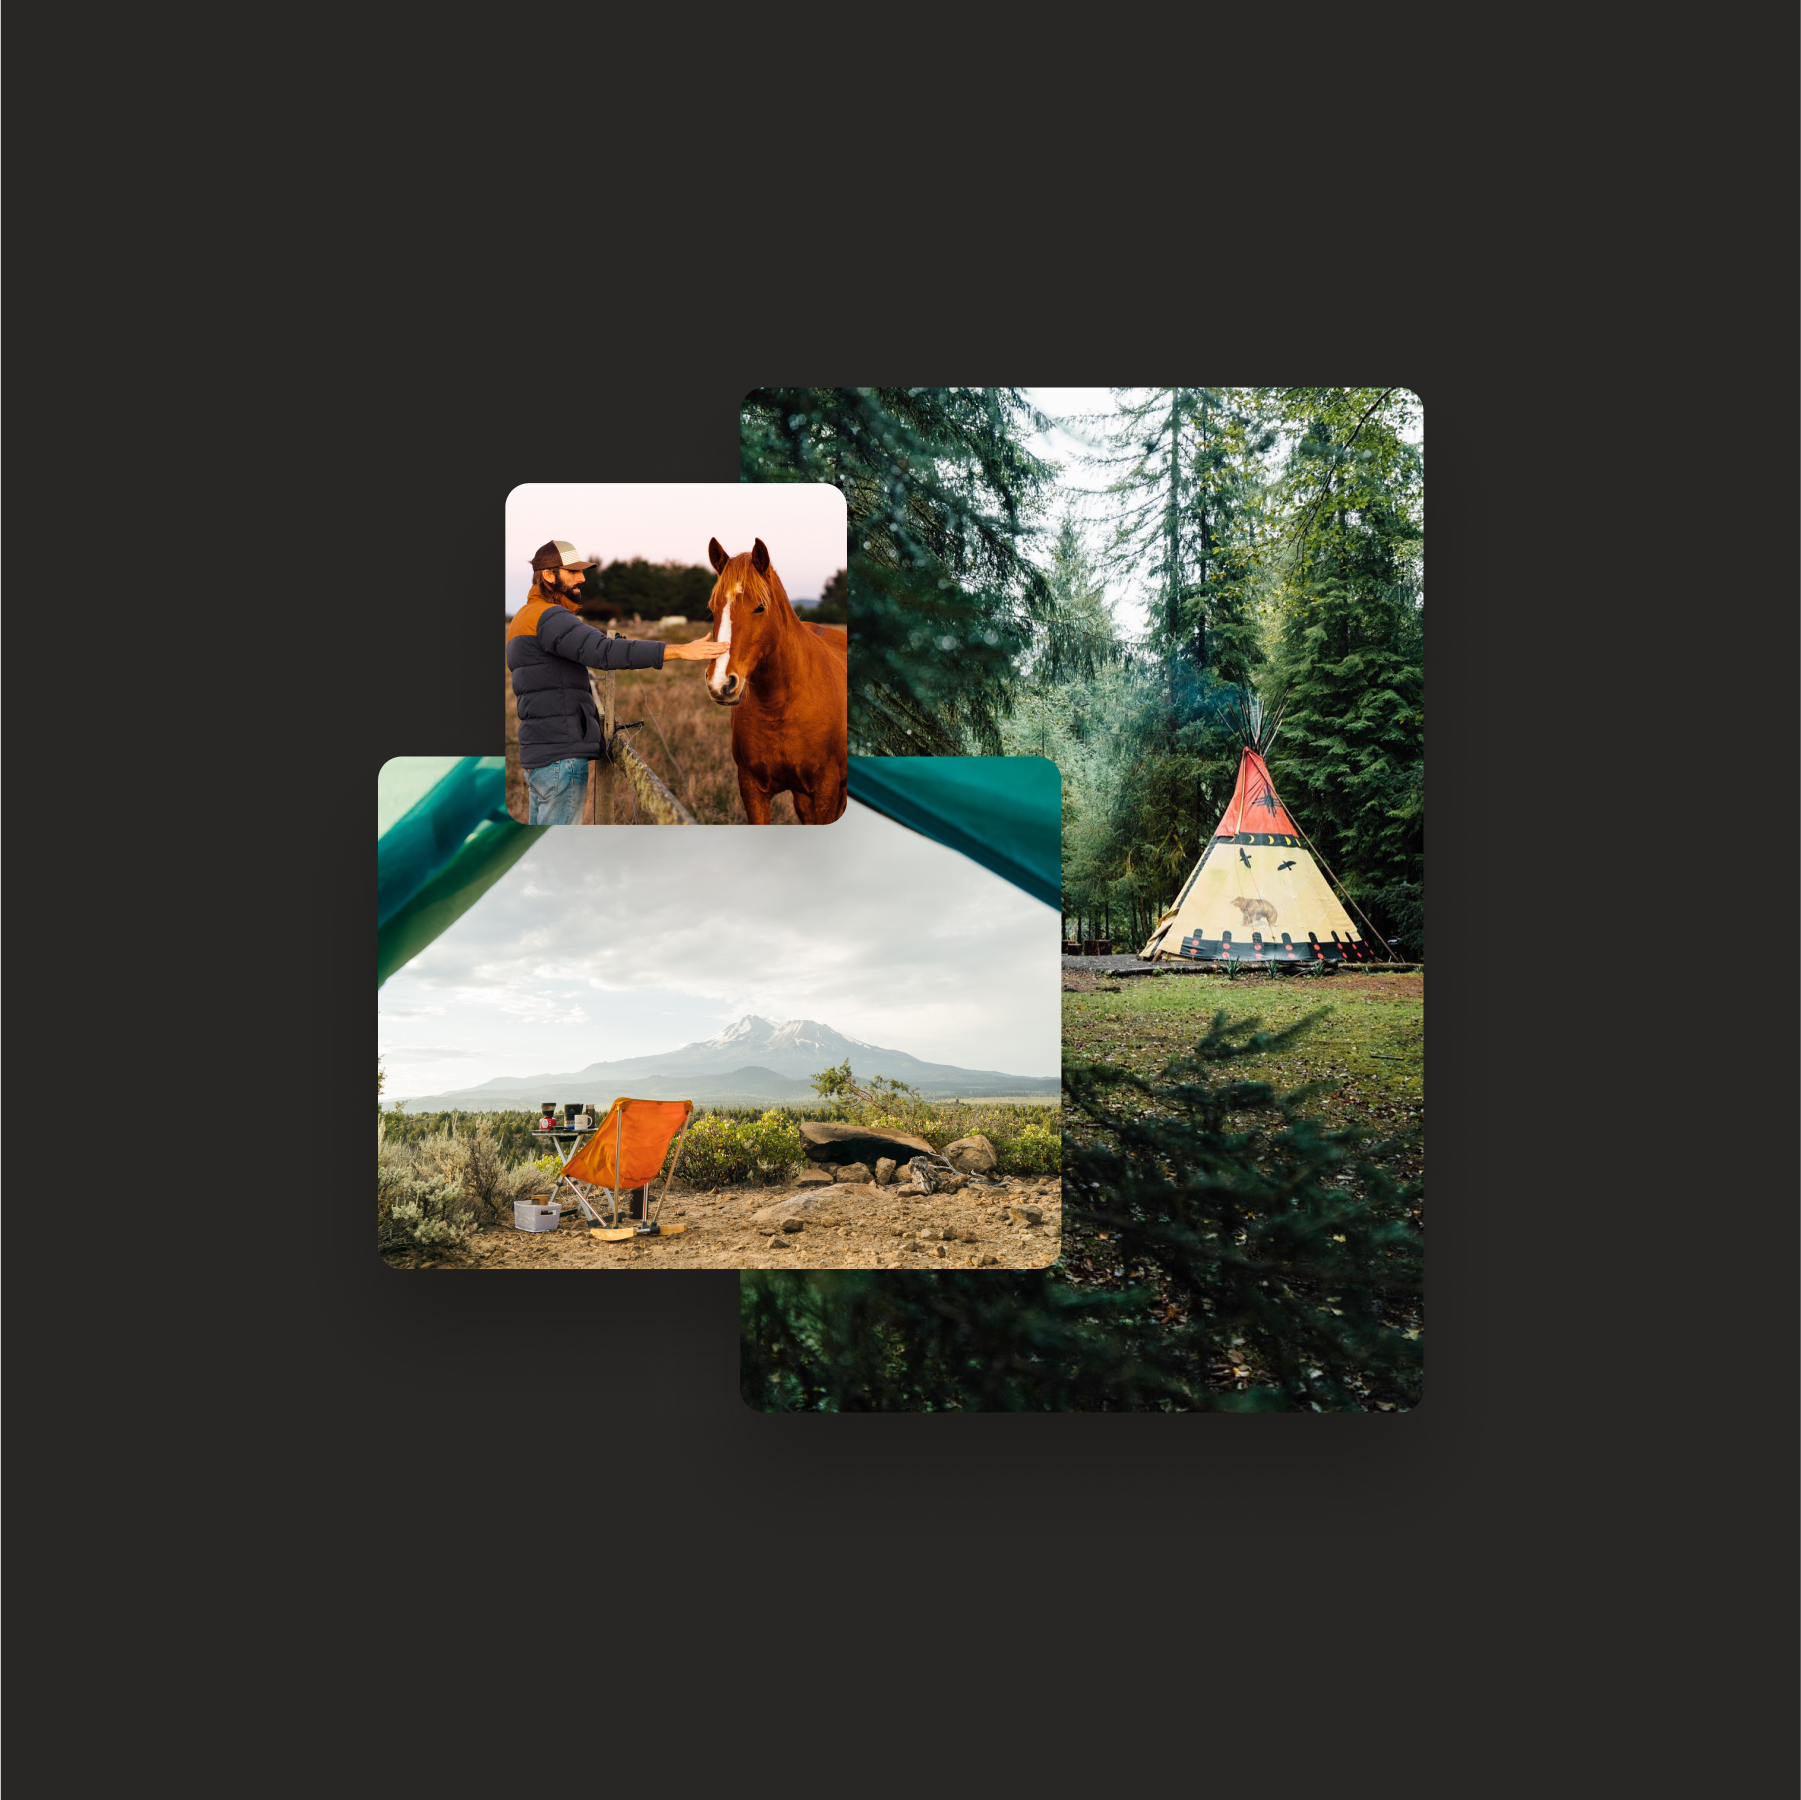 Mockup of three different Hipcamp camping images, one of a tipi, one of a man petting a horse, and one of a mountain view out of a tent flap